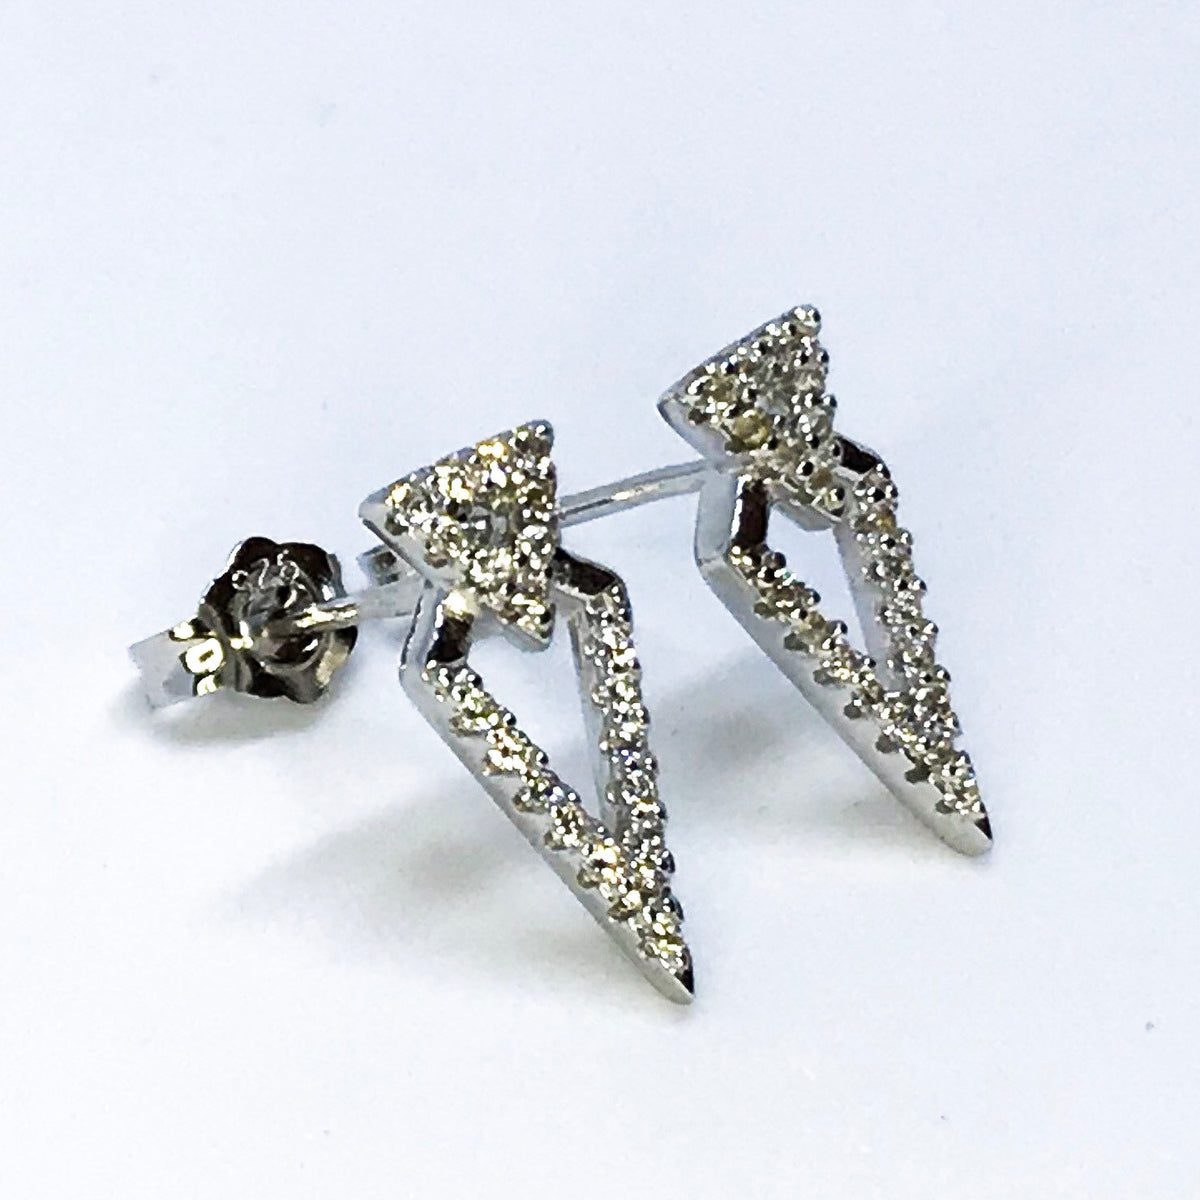 14K White Gold on Sterling Silver Unique Arrow Earrings - 3 Royal Dazzy